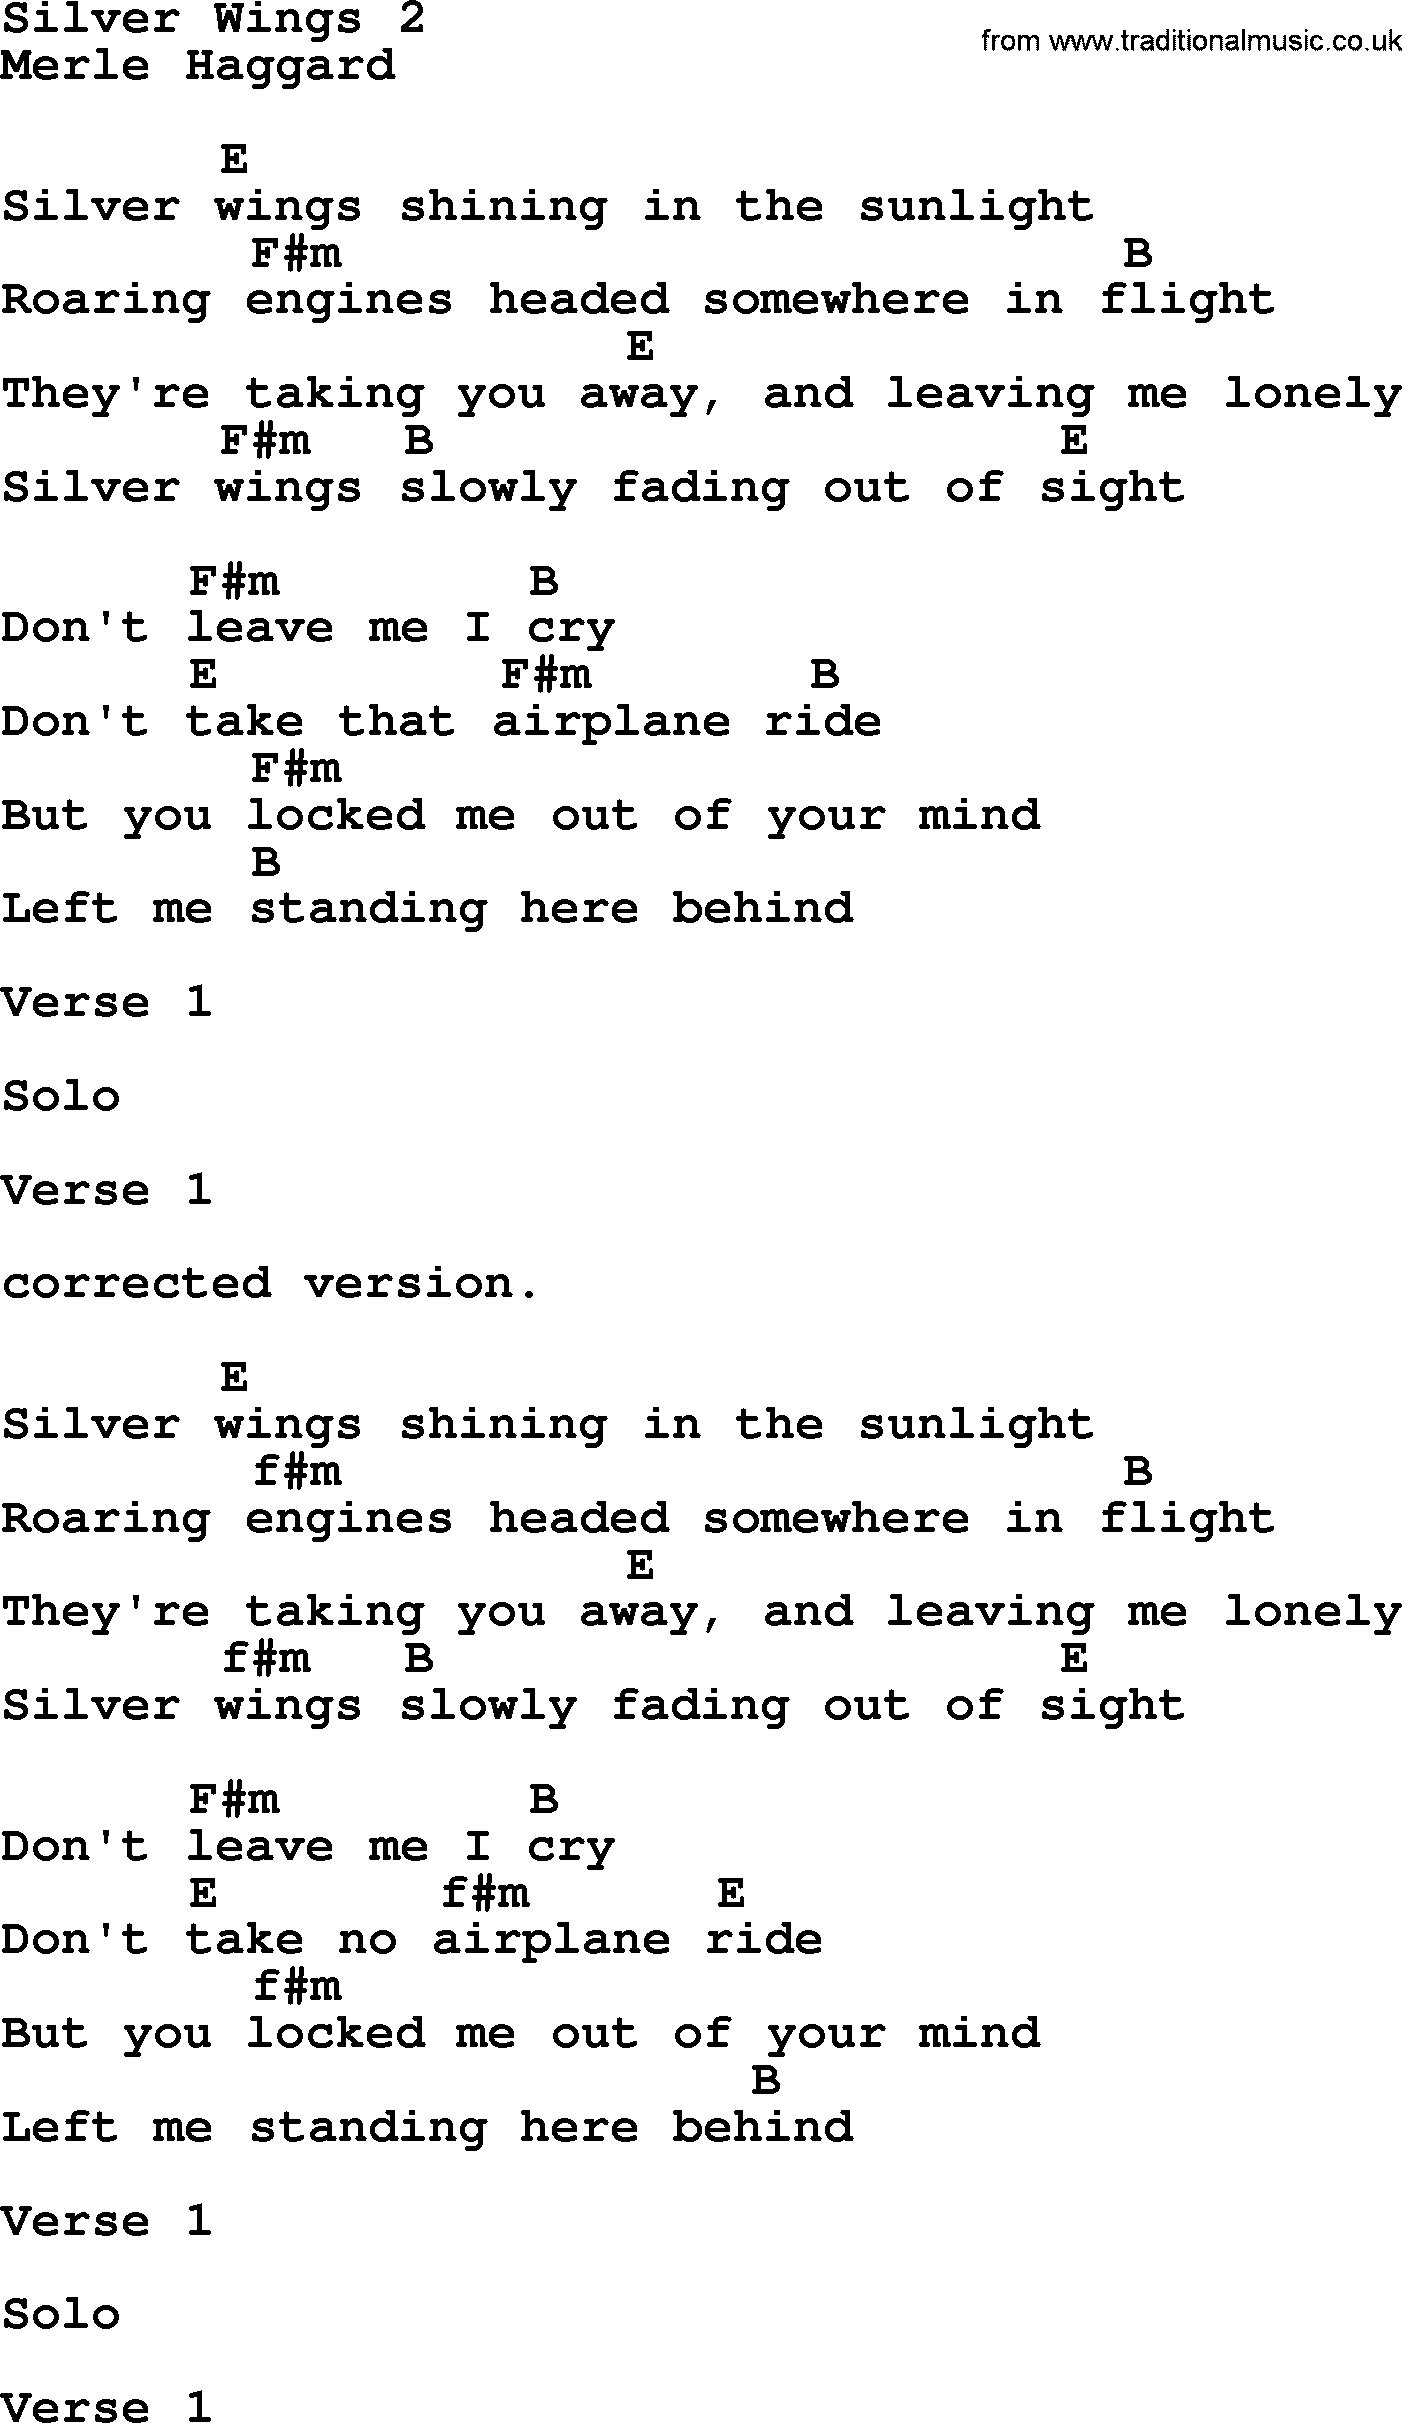 Silver Wings 15 by Merle Haggard   lyrics and chords